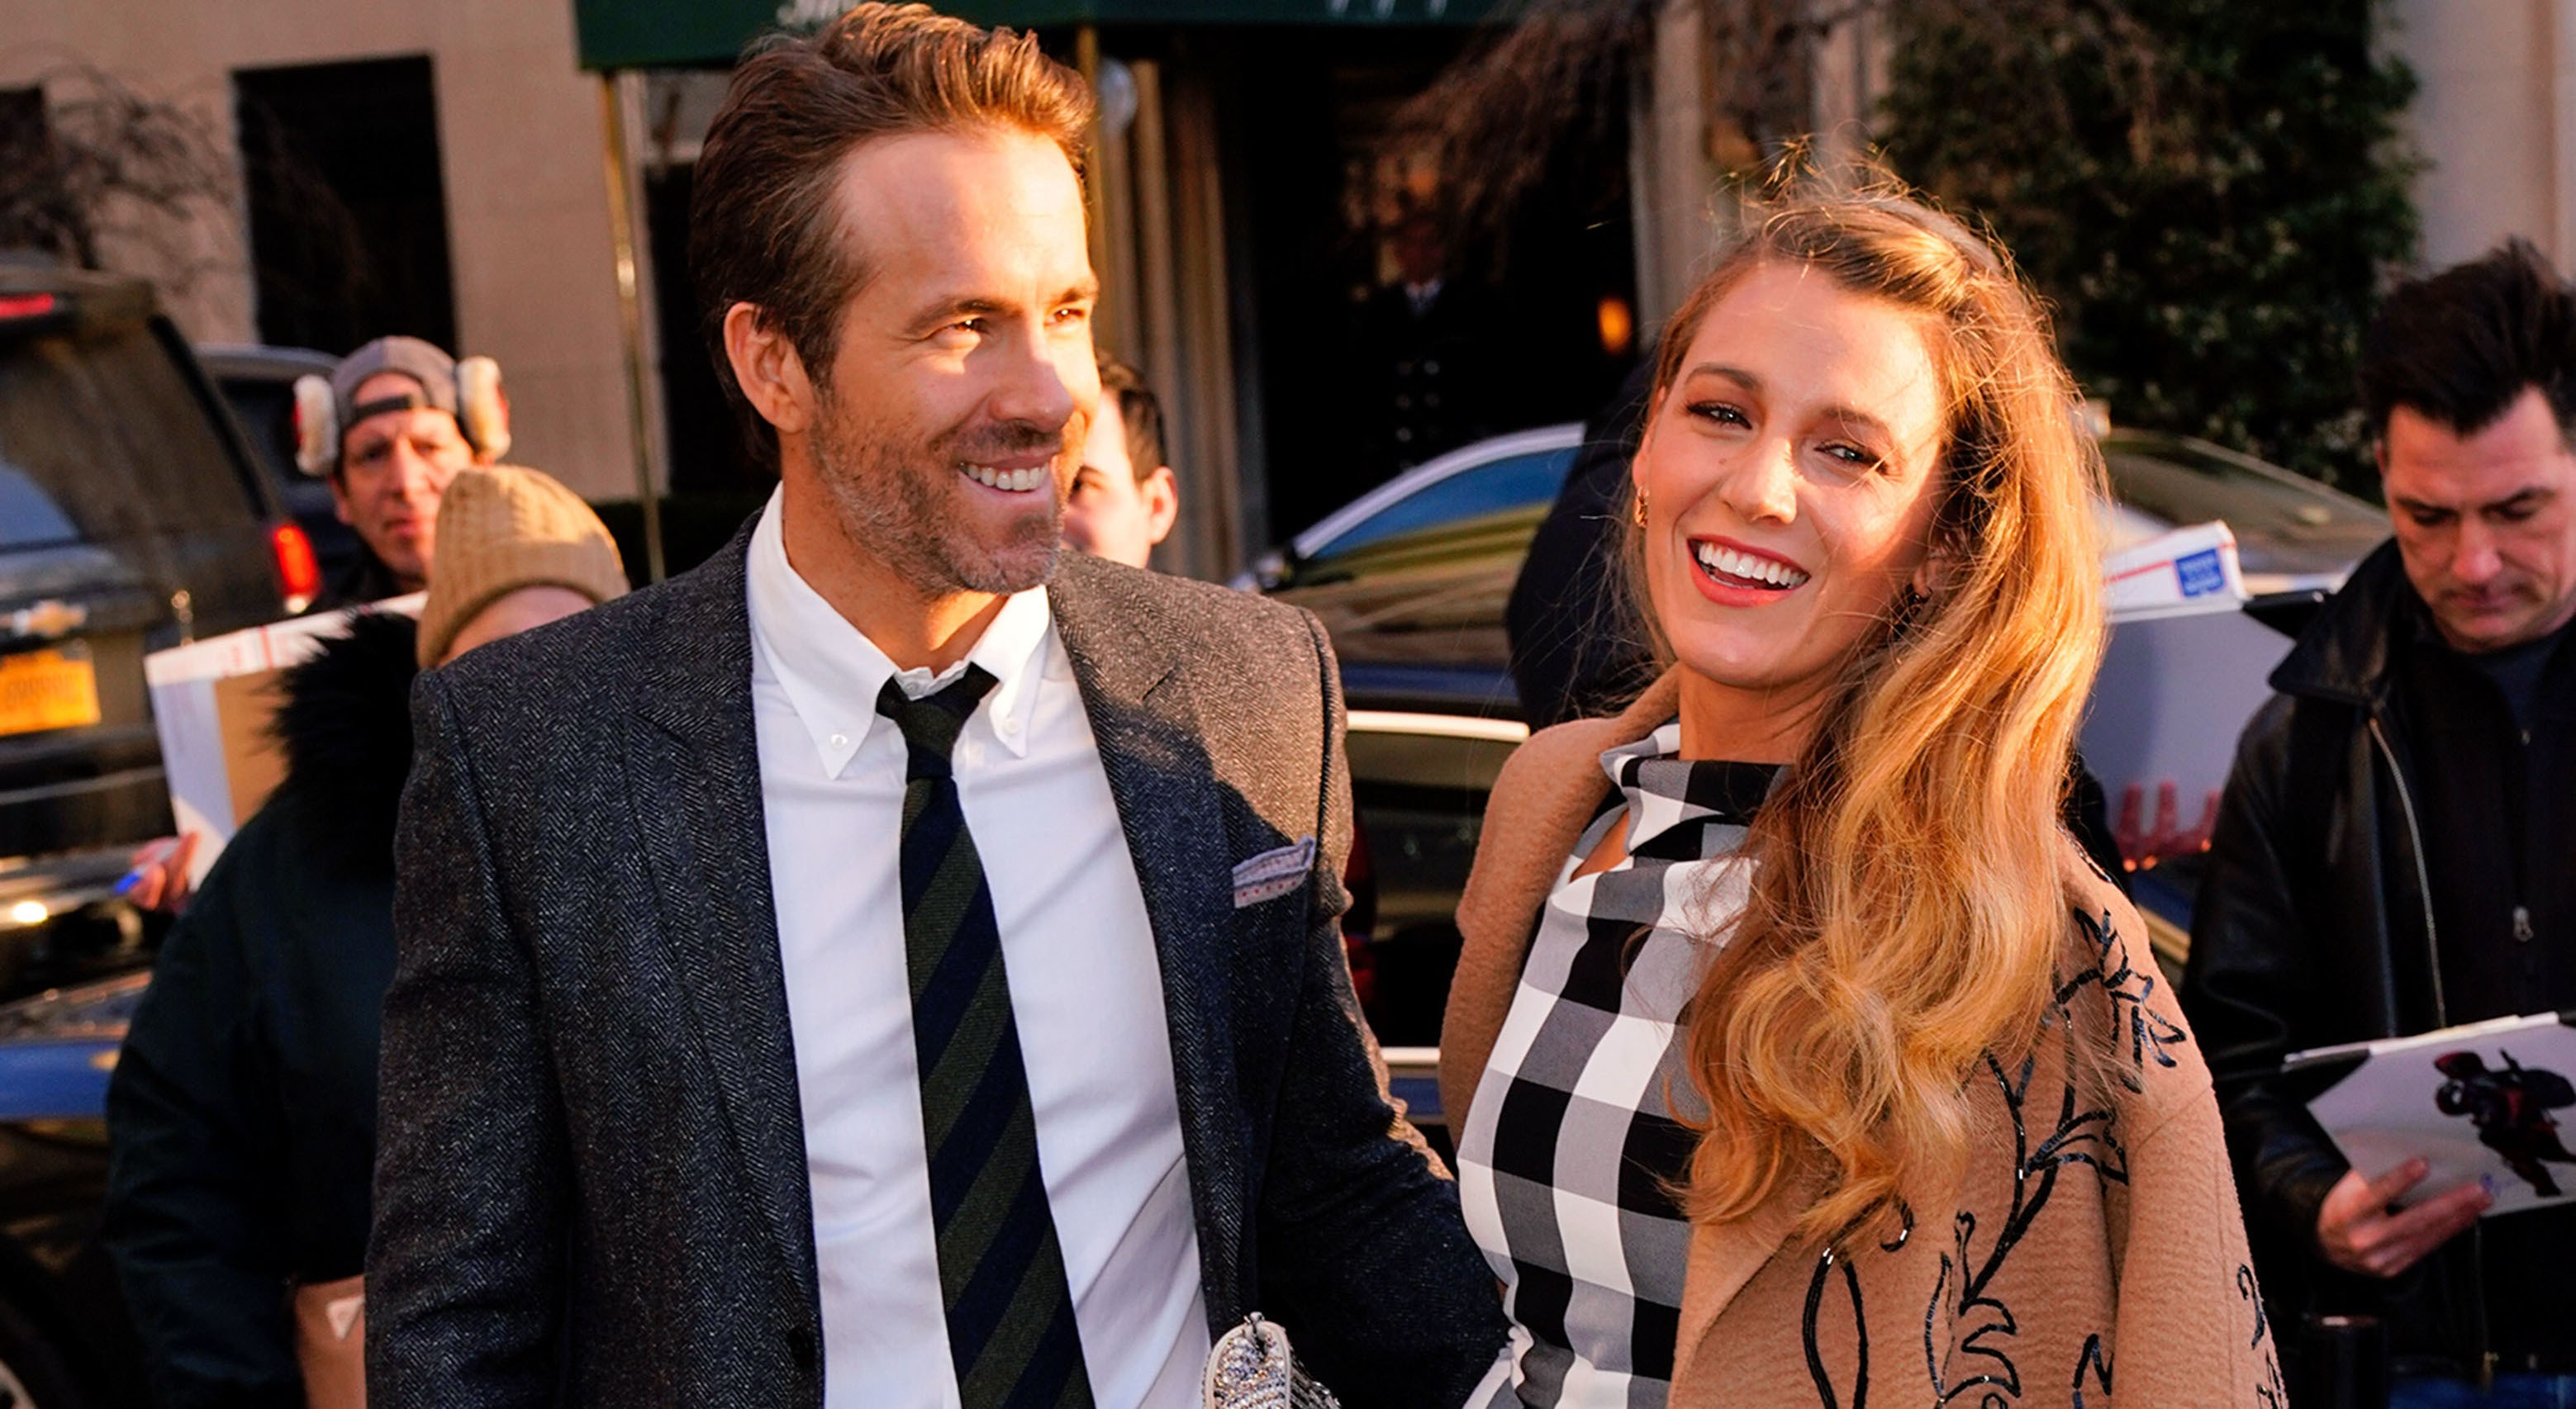 Blake Lively and Ryan Reynolds' Latest Instagram Trolling Battle Is One for the Books